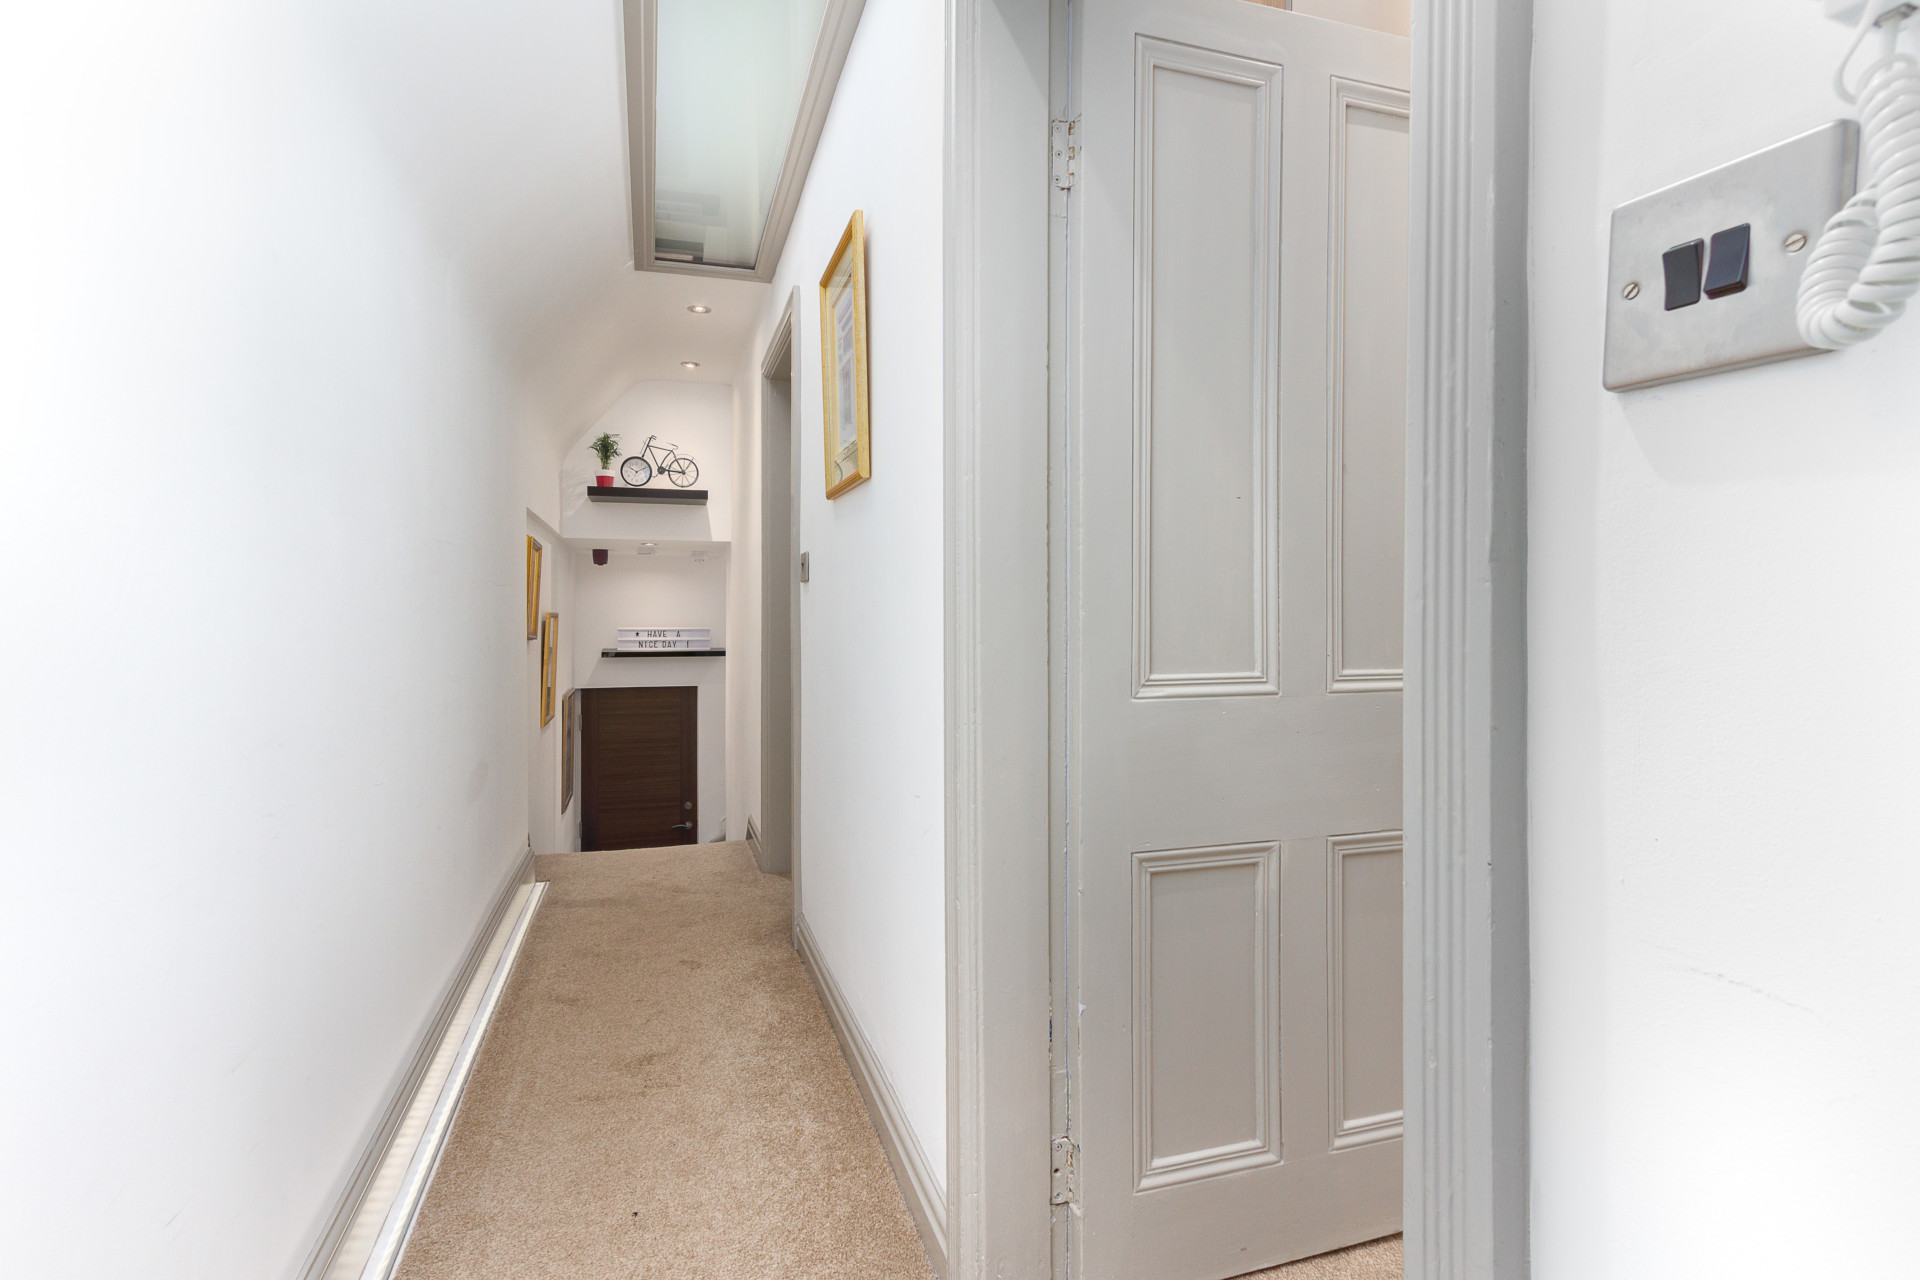 Internal hallway leading to all rooms